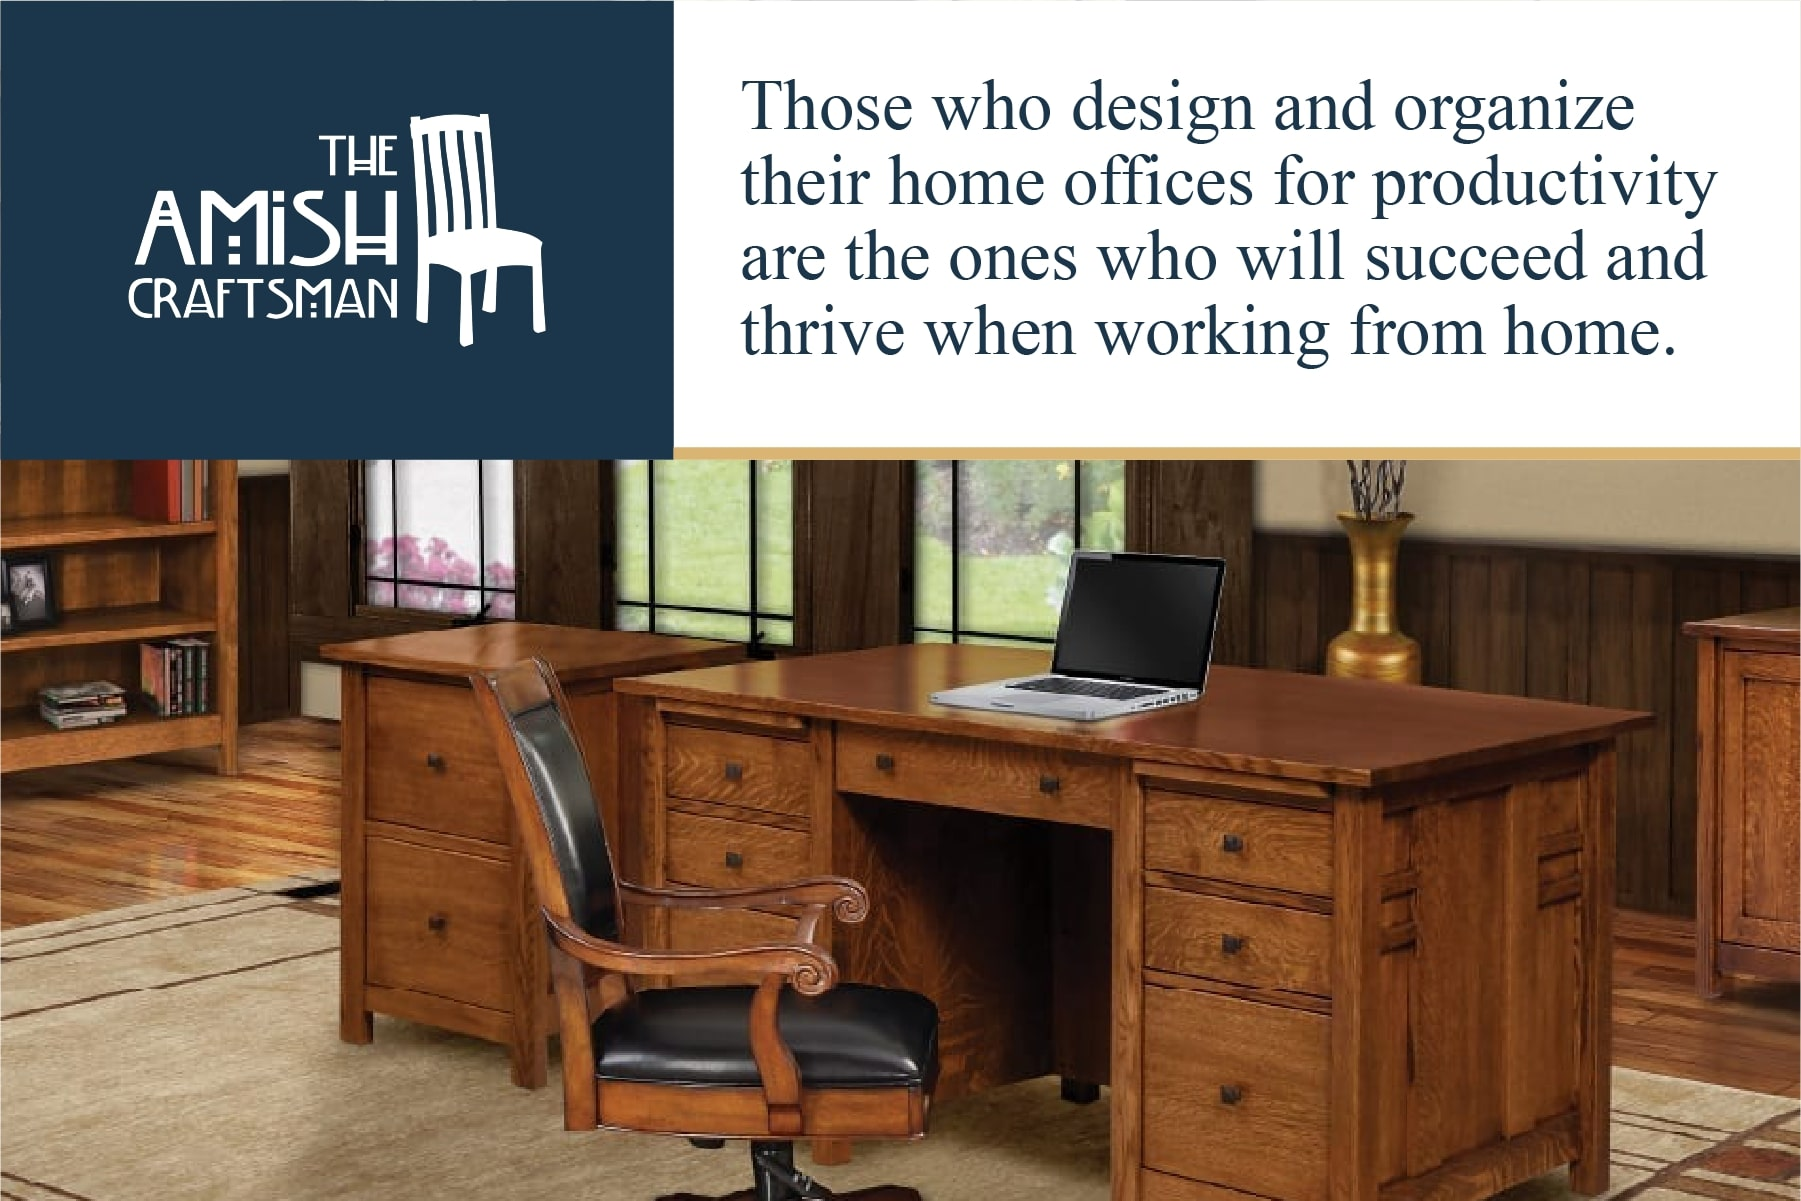 an organized home office will put you ahead of the competition